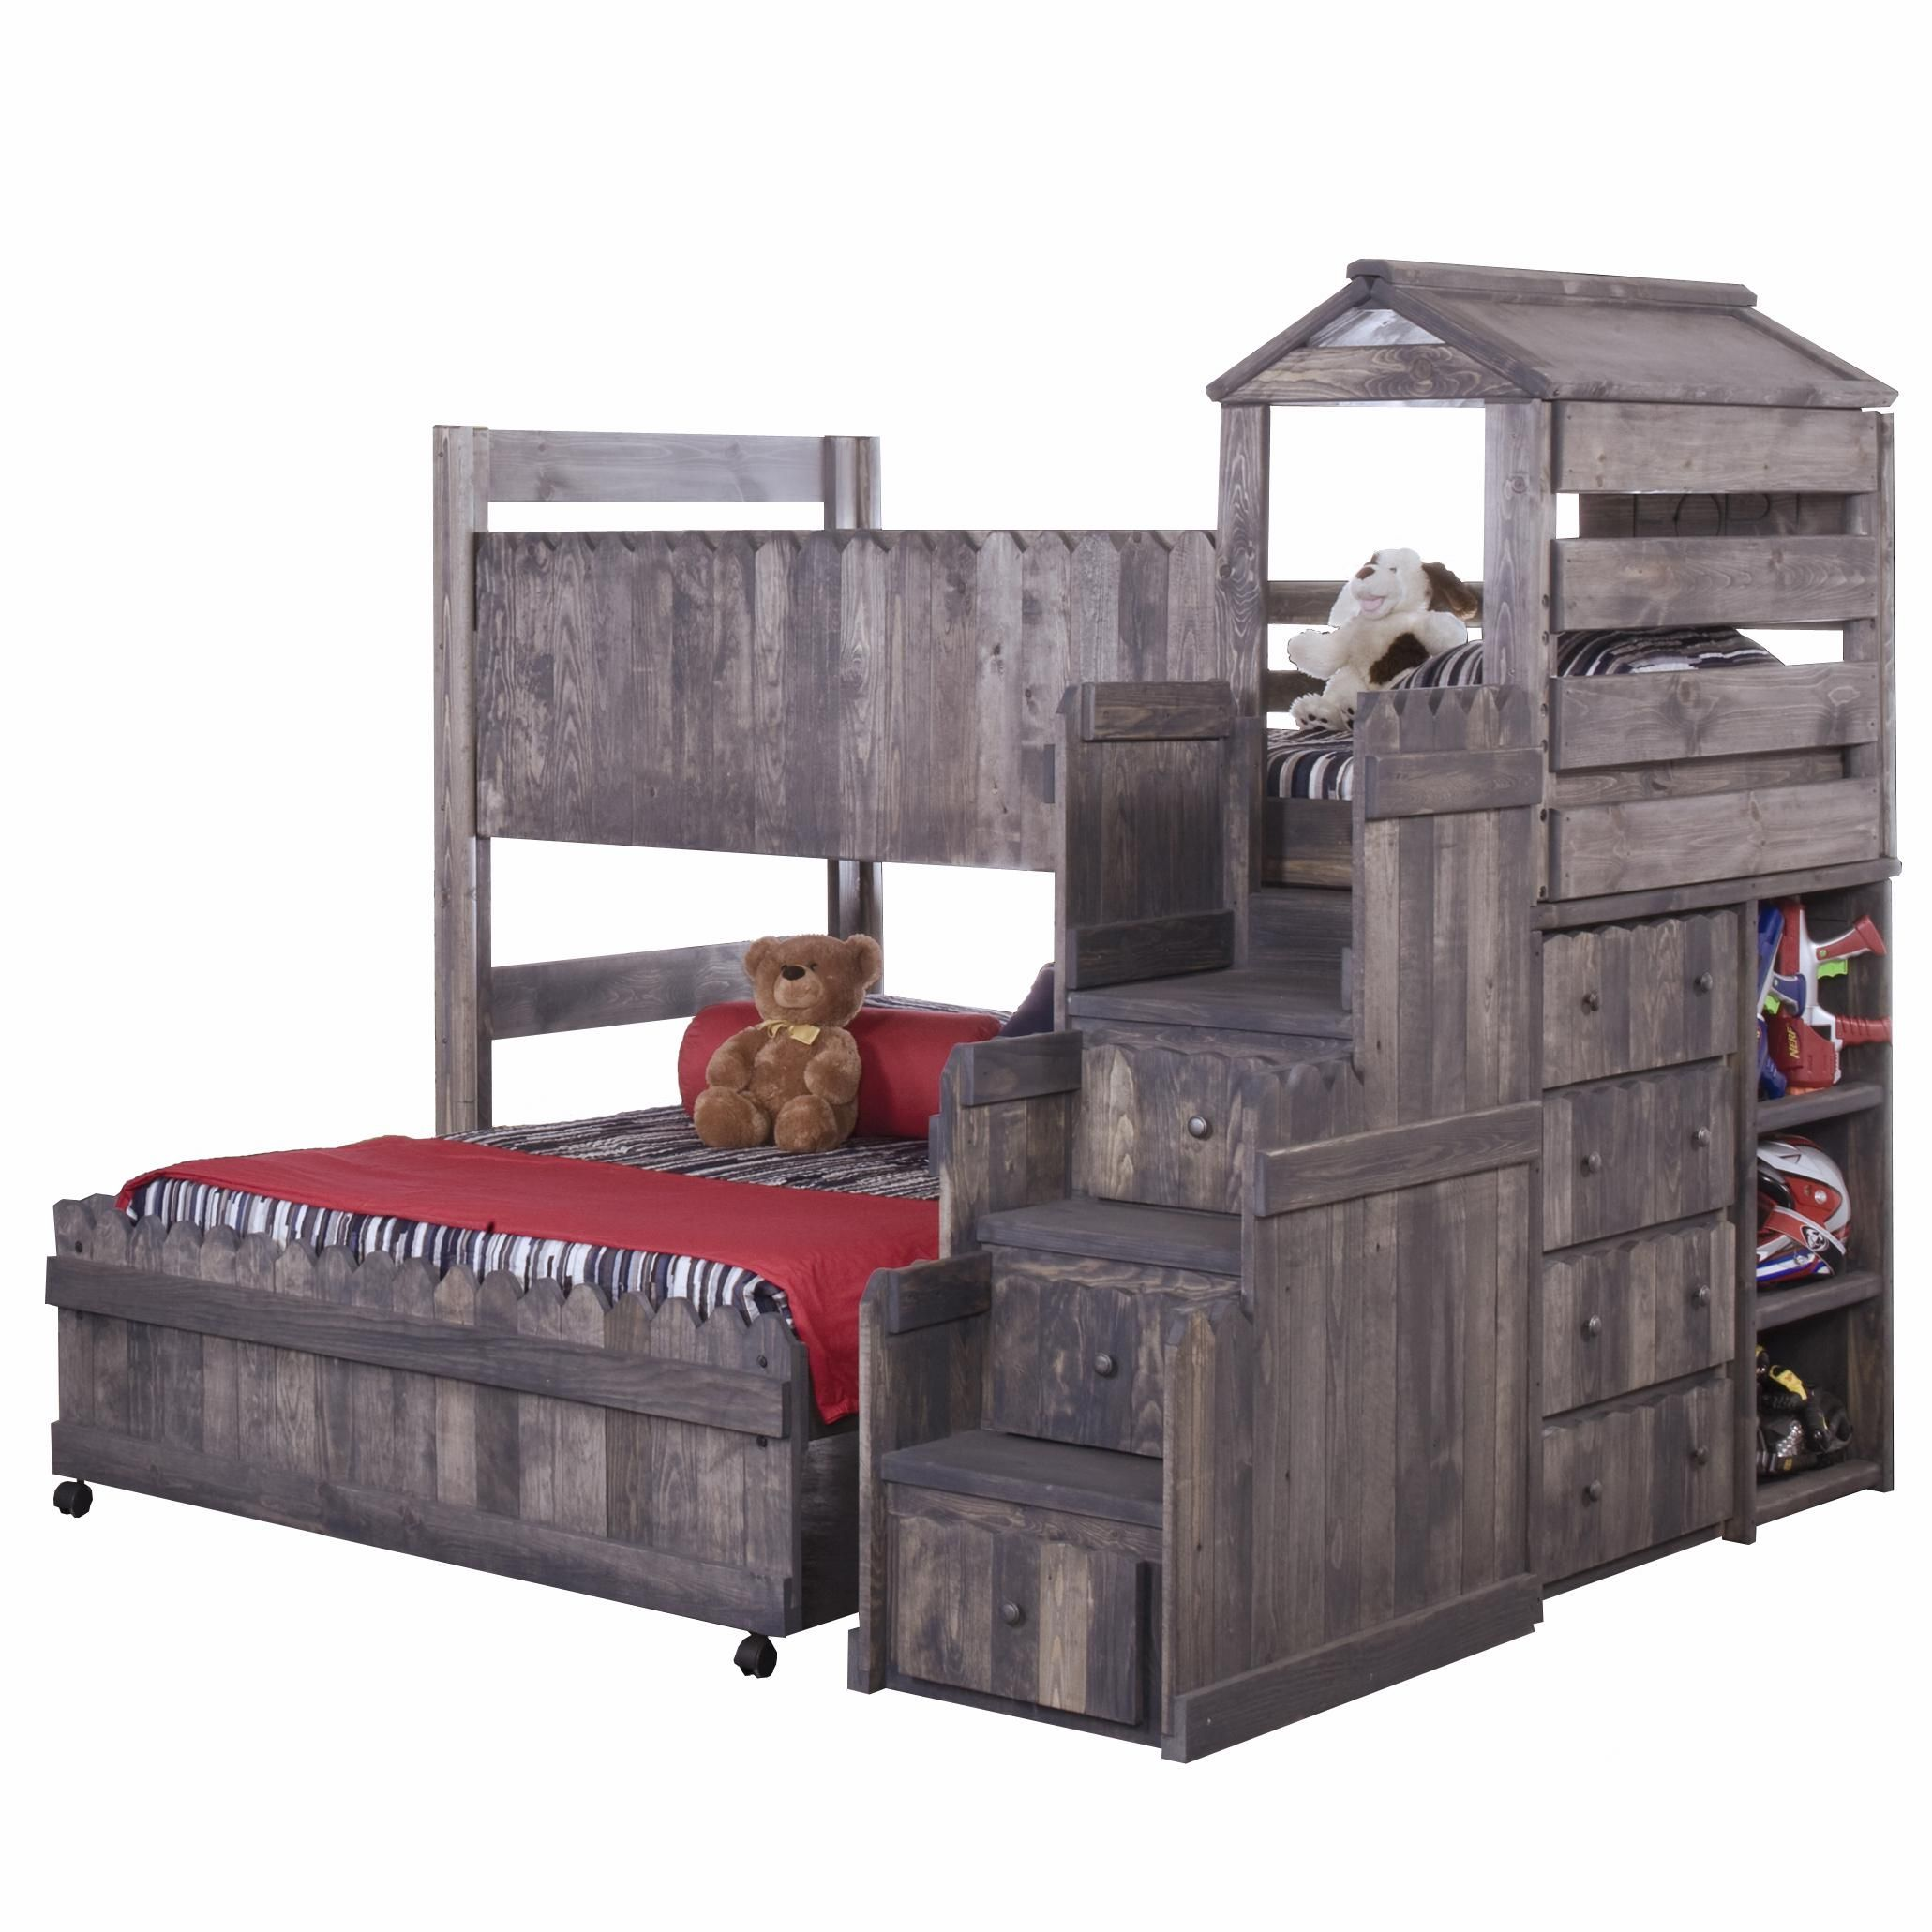 Boys' twin loft bed with storage steps  The Fort TwinFull Complete Loft Fort Bed with Stairway Chest by